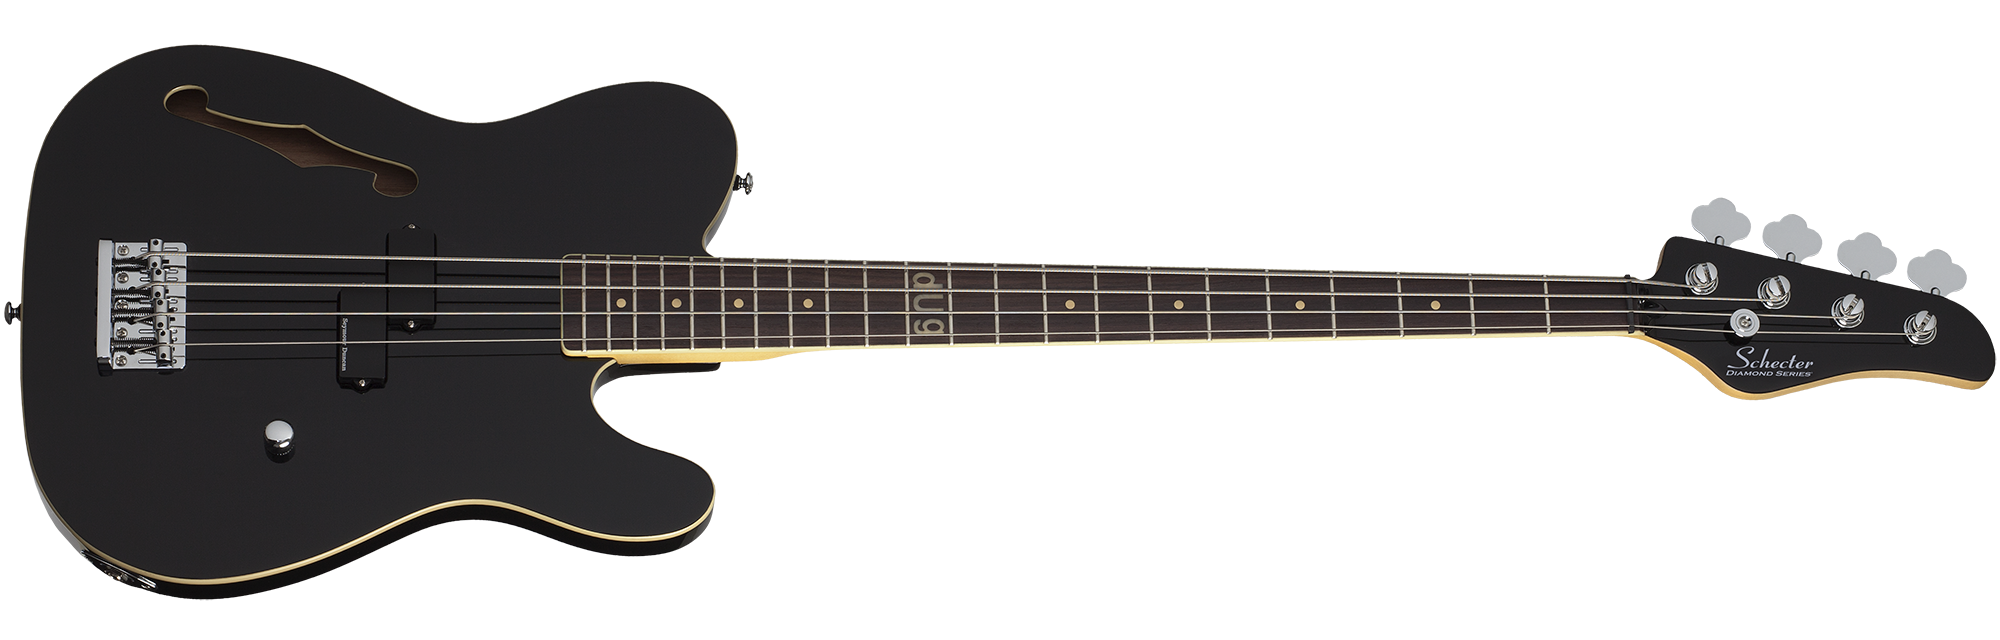 dUg Pinnick Baron-H Bass Gloss Black (BLK) SKU #262